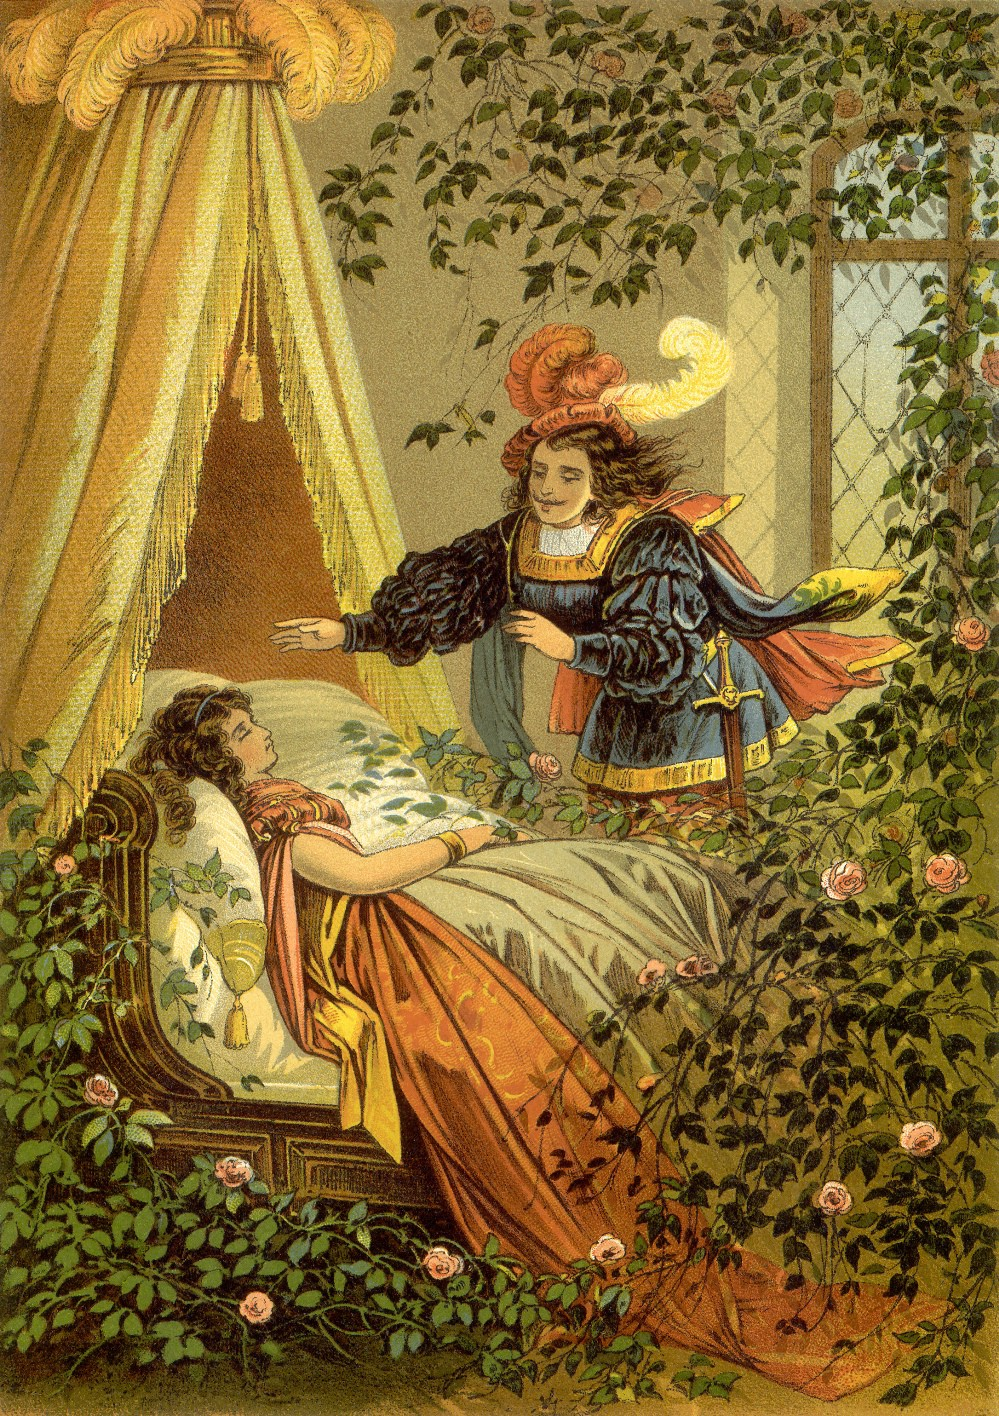 favorite fairy tale from childhood Although most of the field treats fairy tales as stories meant for an adult or mixed  audience, specifics on connections to childhood studies.